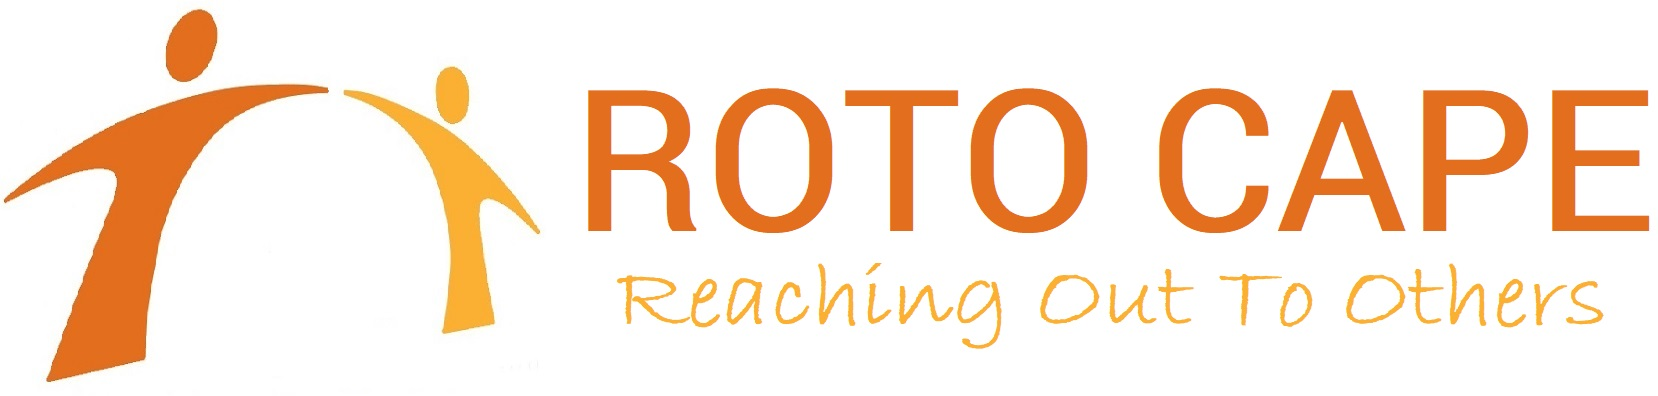 Reaching Out To Others Logo